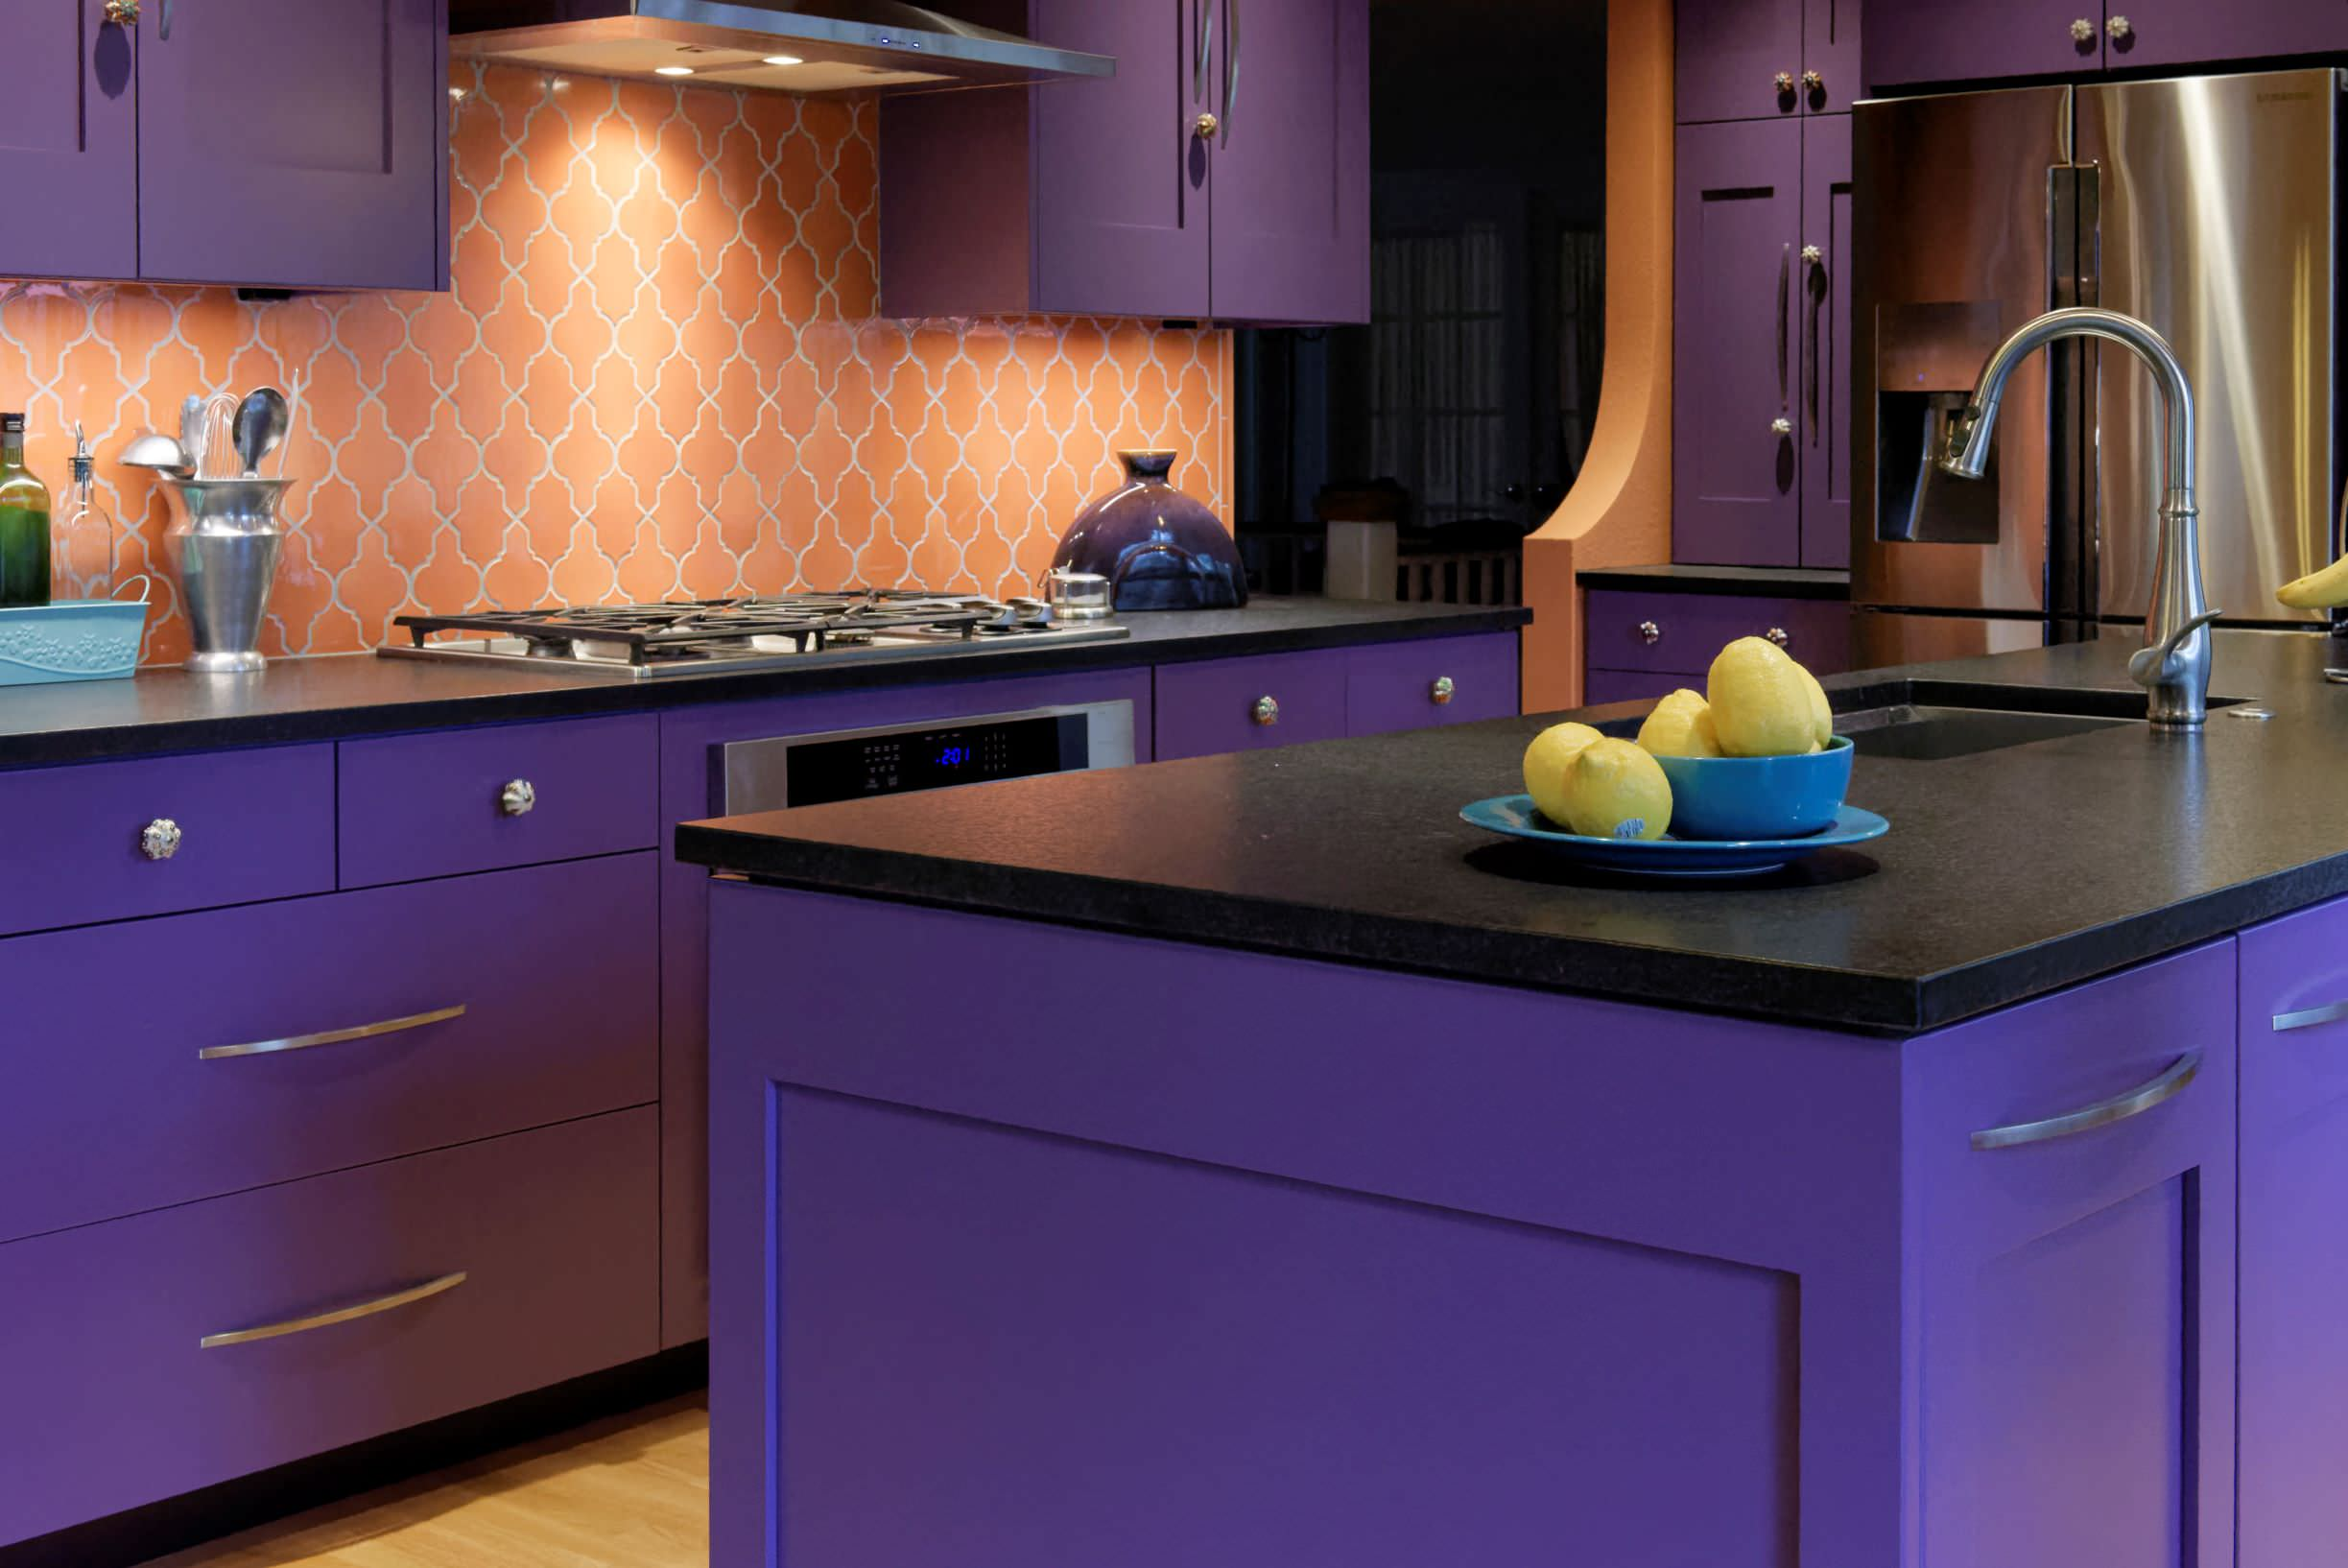 75 Beautiful Purple Kitchen With Black Countertops Pictures Ideas May 2021 Houzz